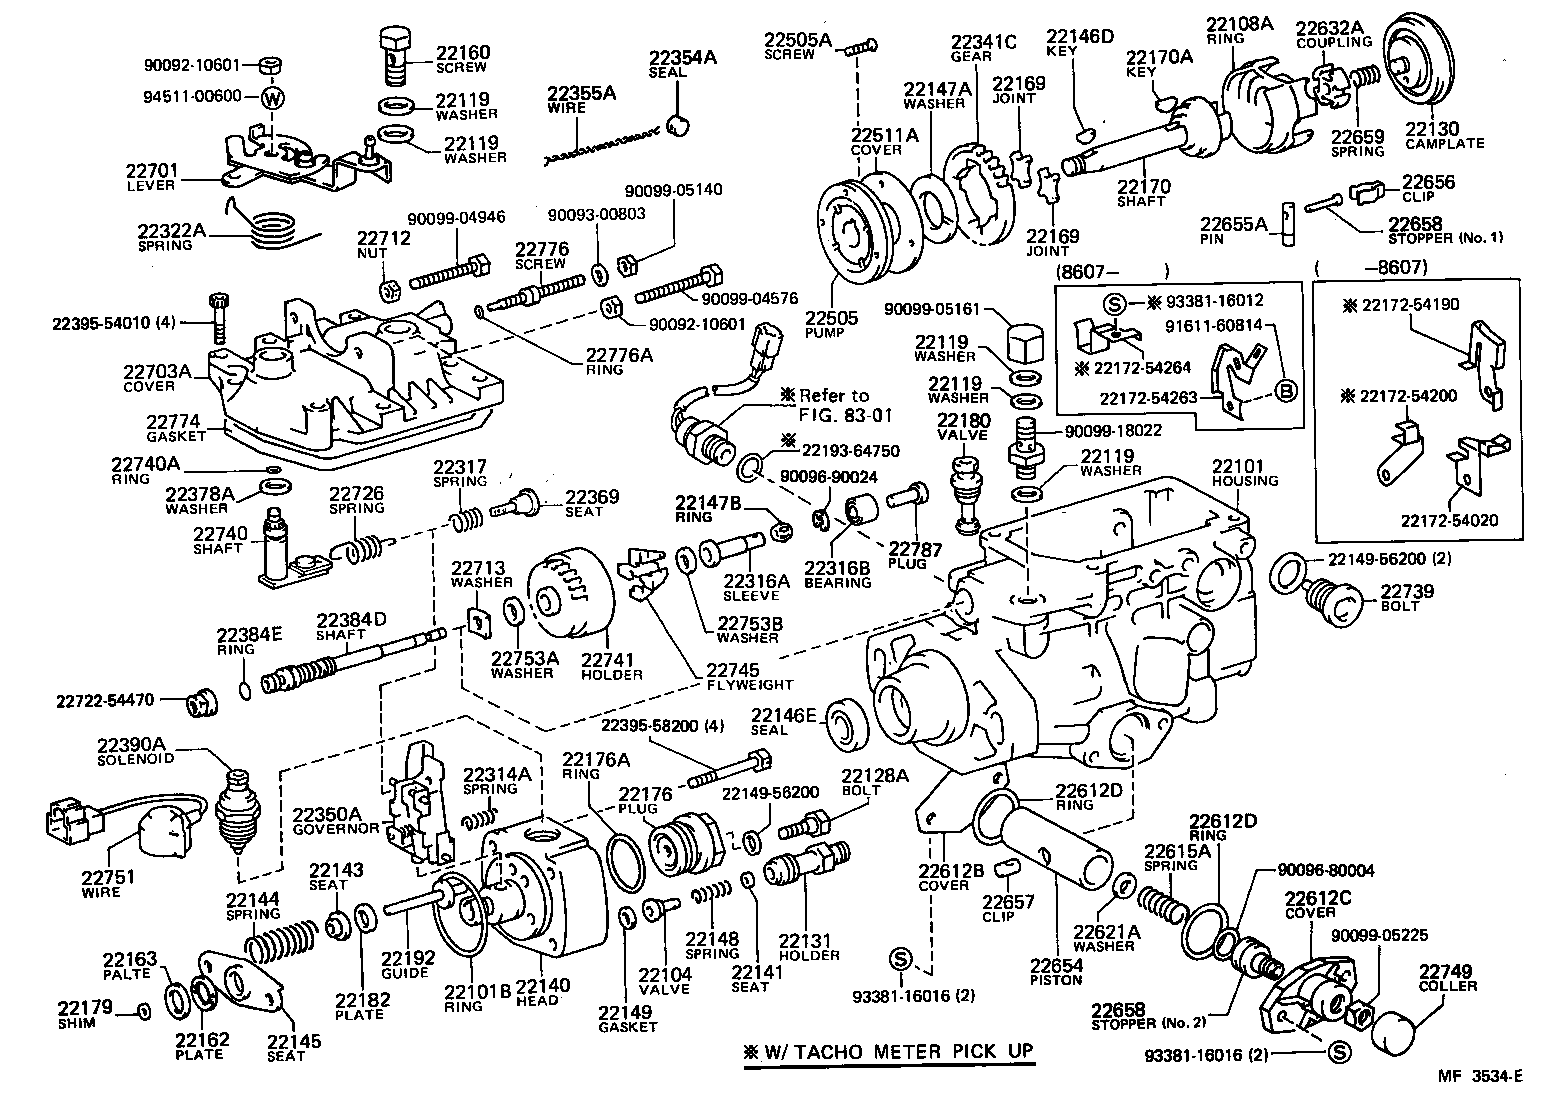 1983 toyota pickup wiring diagram venn passive and active transport celica get free image